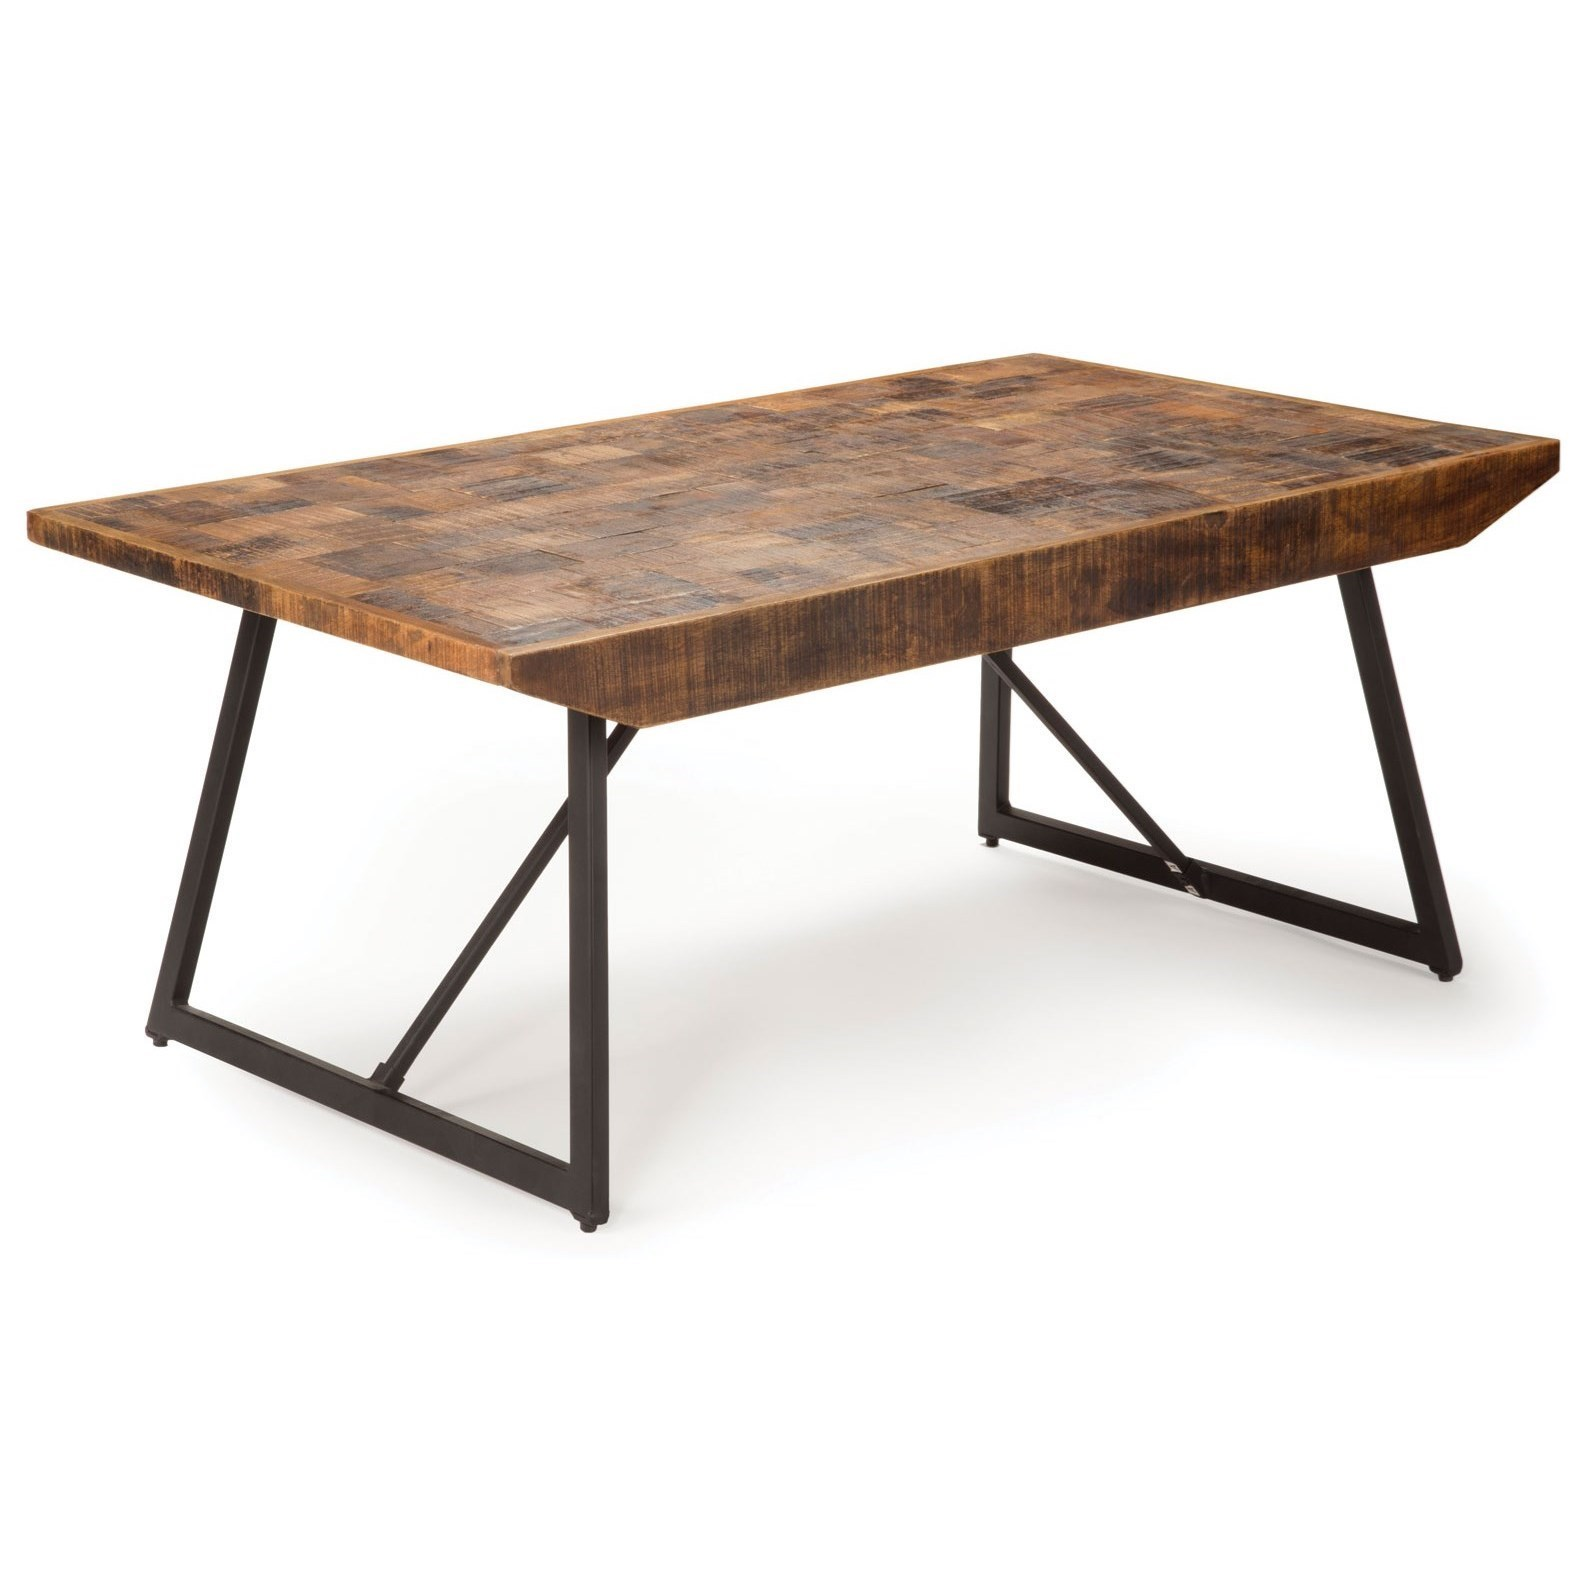 Rustic Industrial Cocktail Table with Parquet Pattern Wood Top